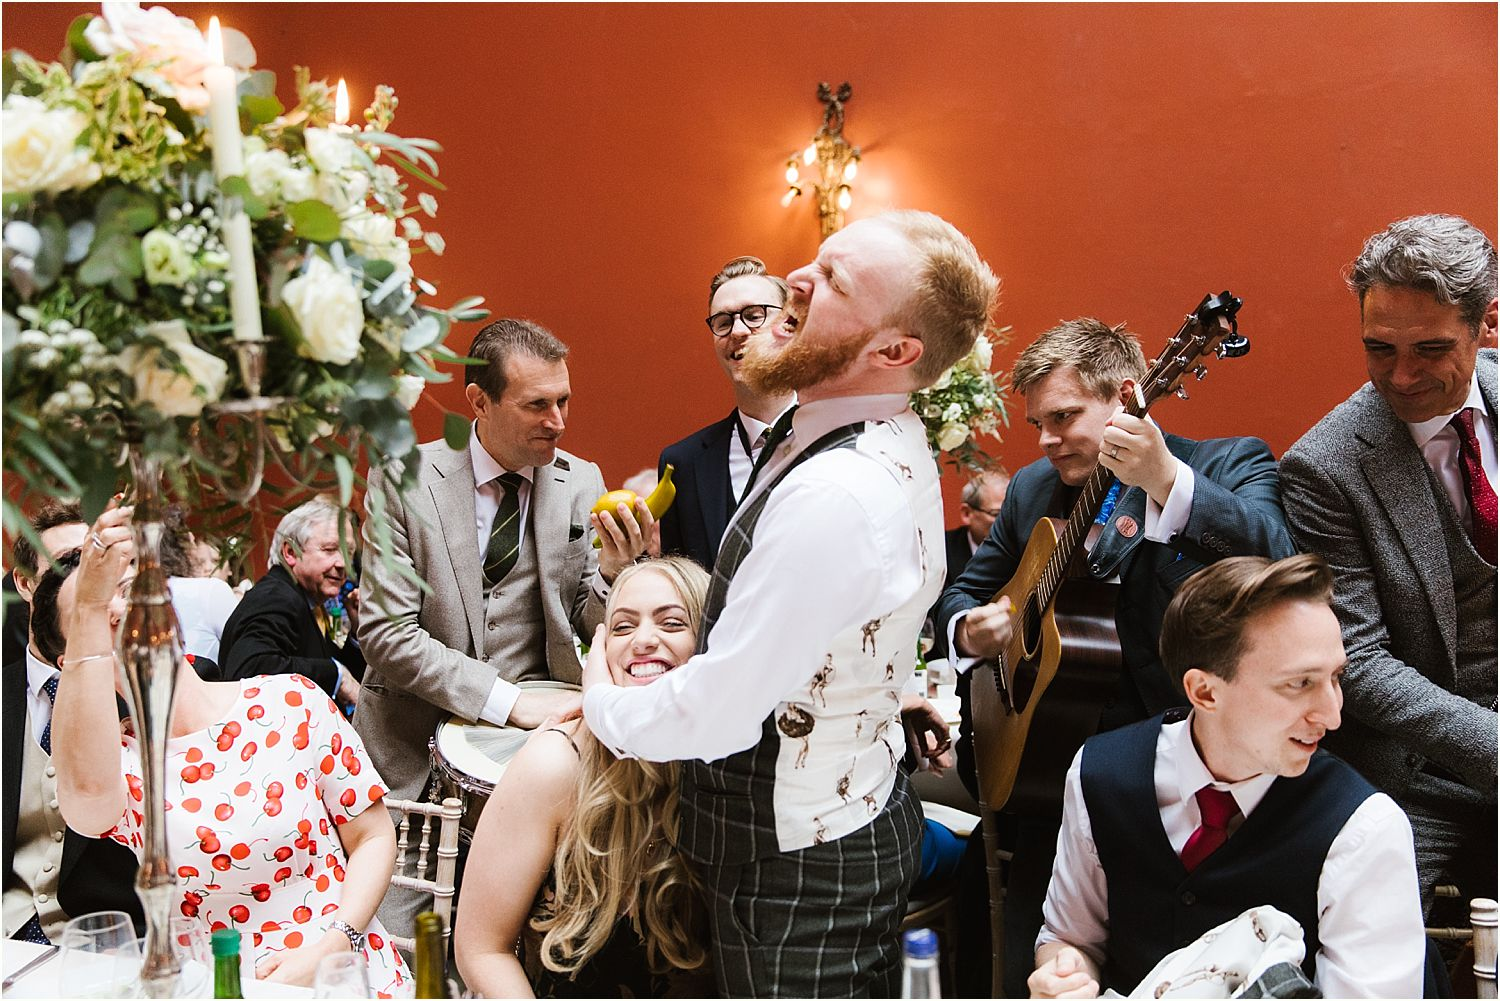 Entertainment and singing by London Essentials at Hampton Court House wedding